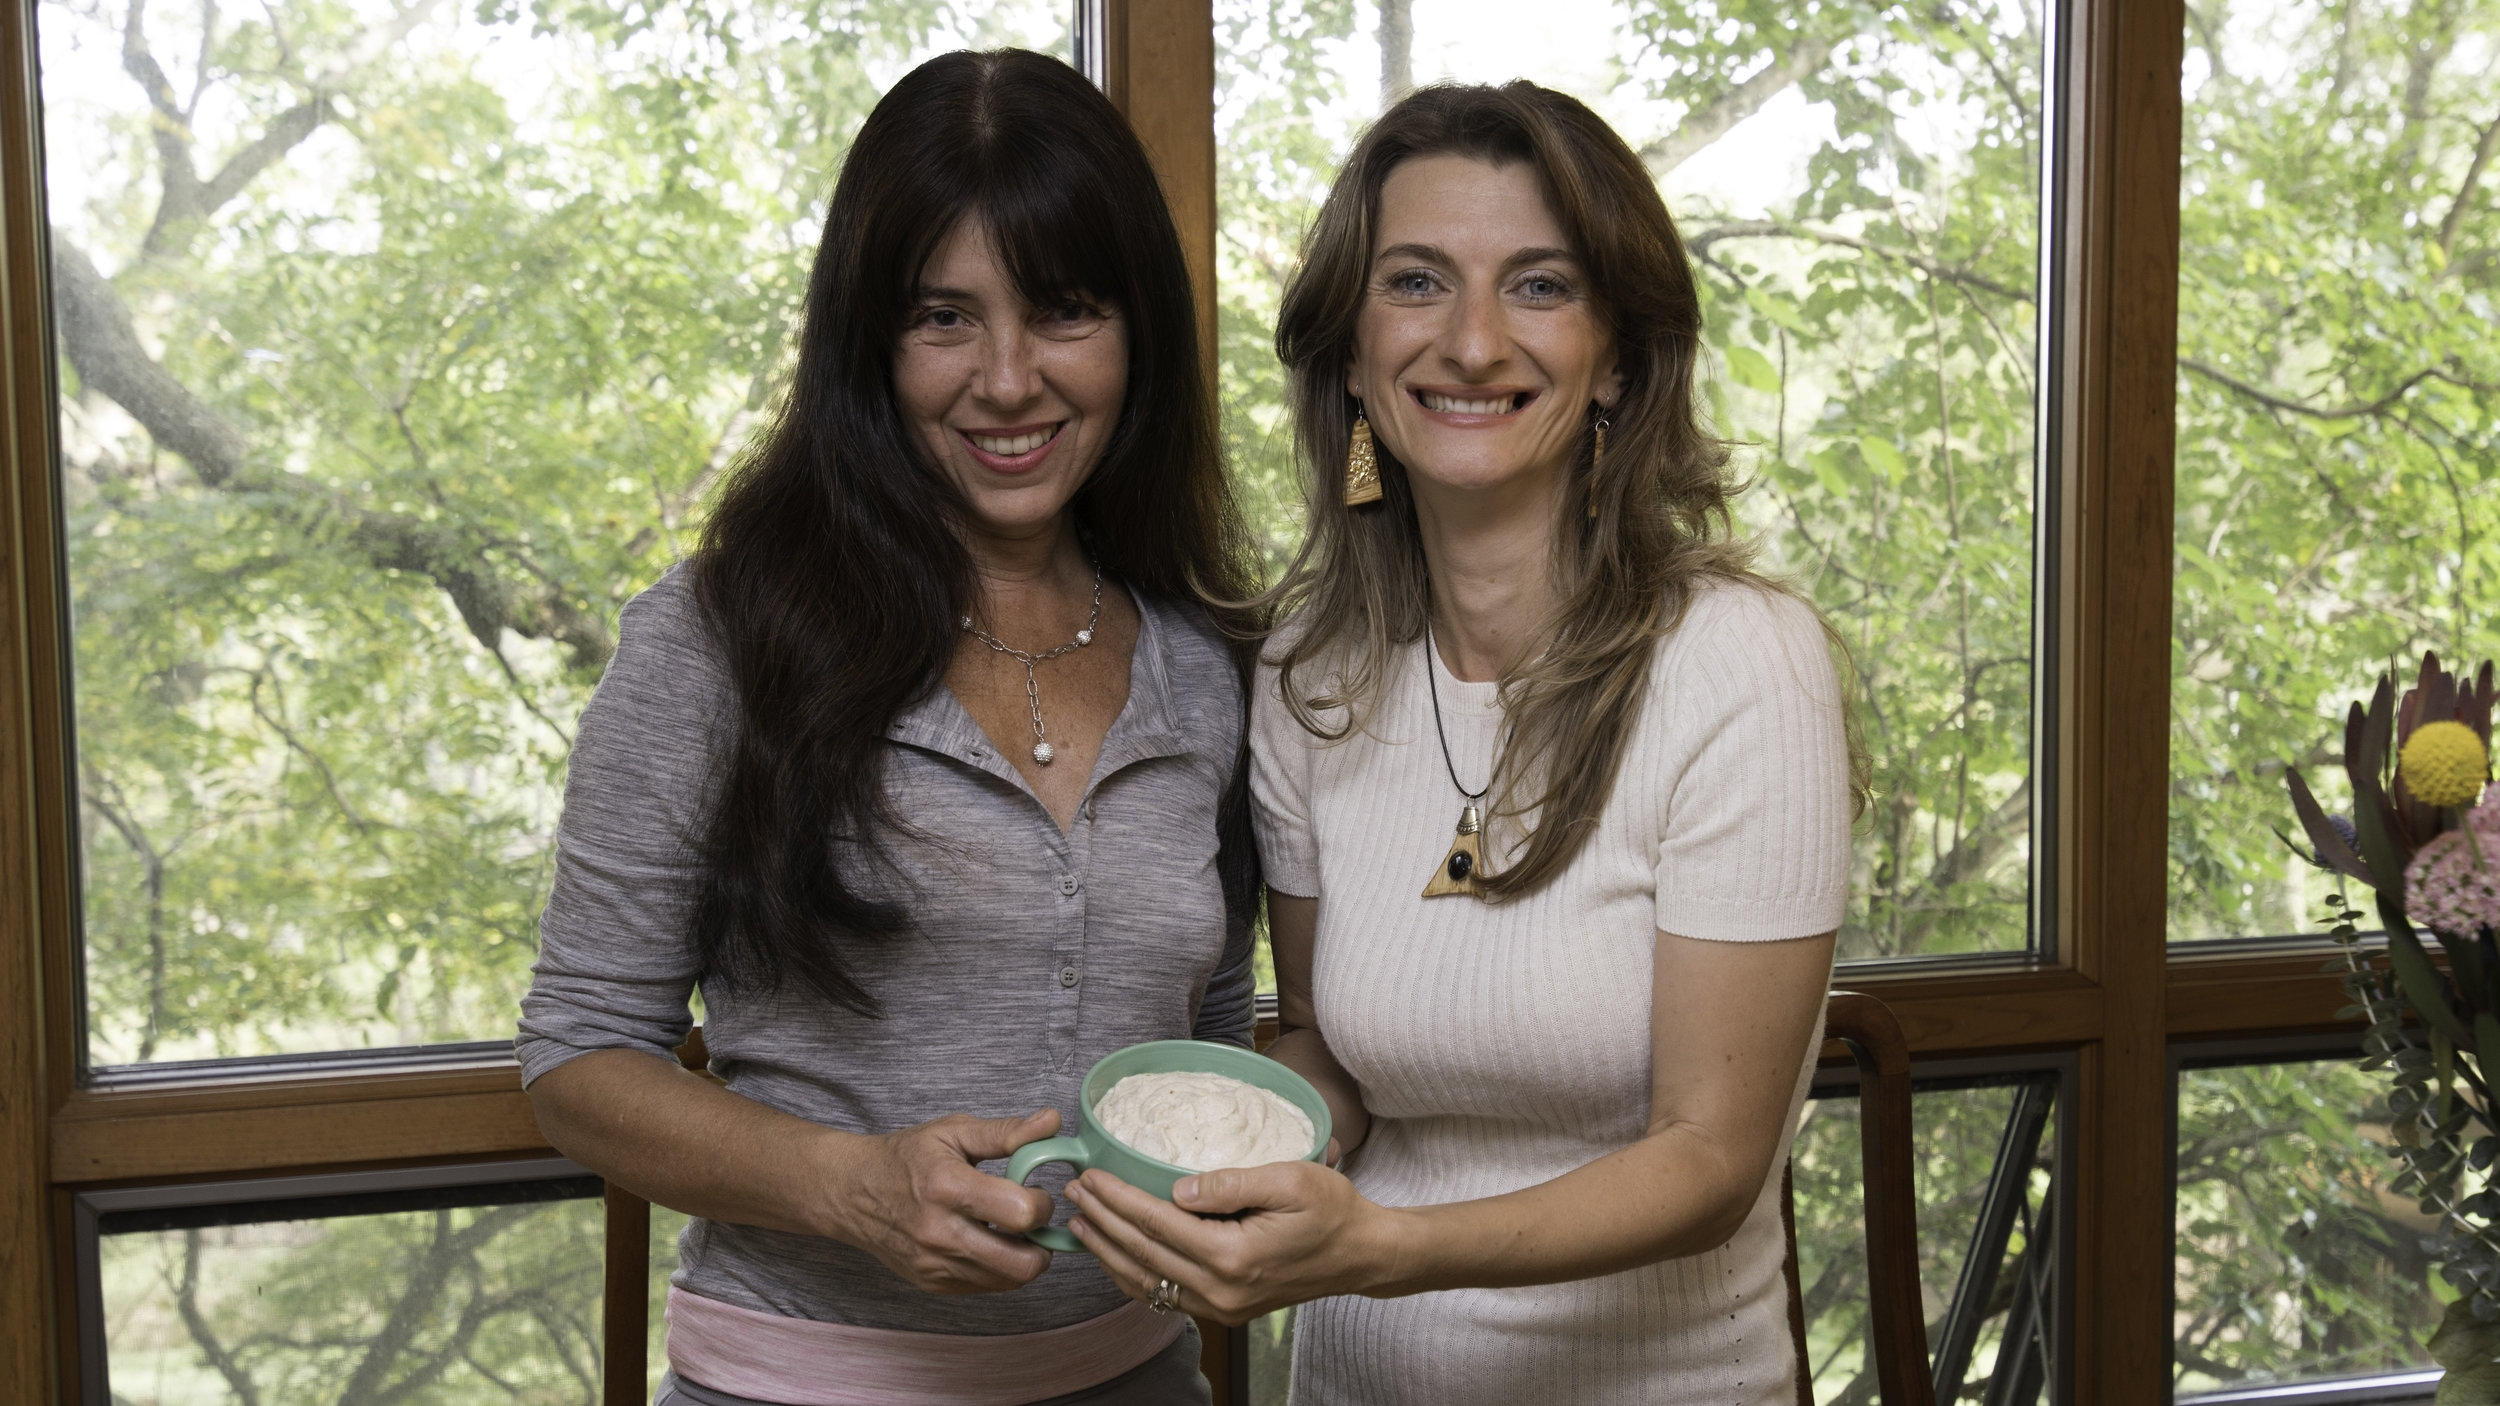 recipes developed and tested by Dr Lina Garcia and Ornella Lazich